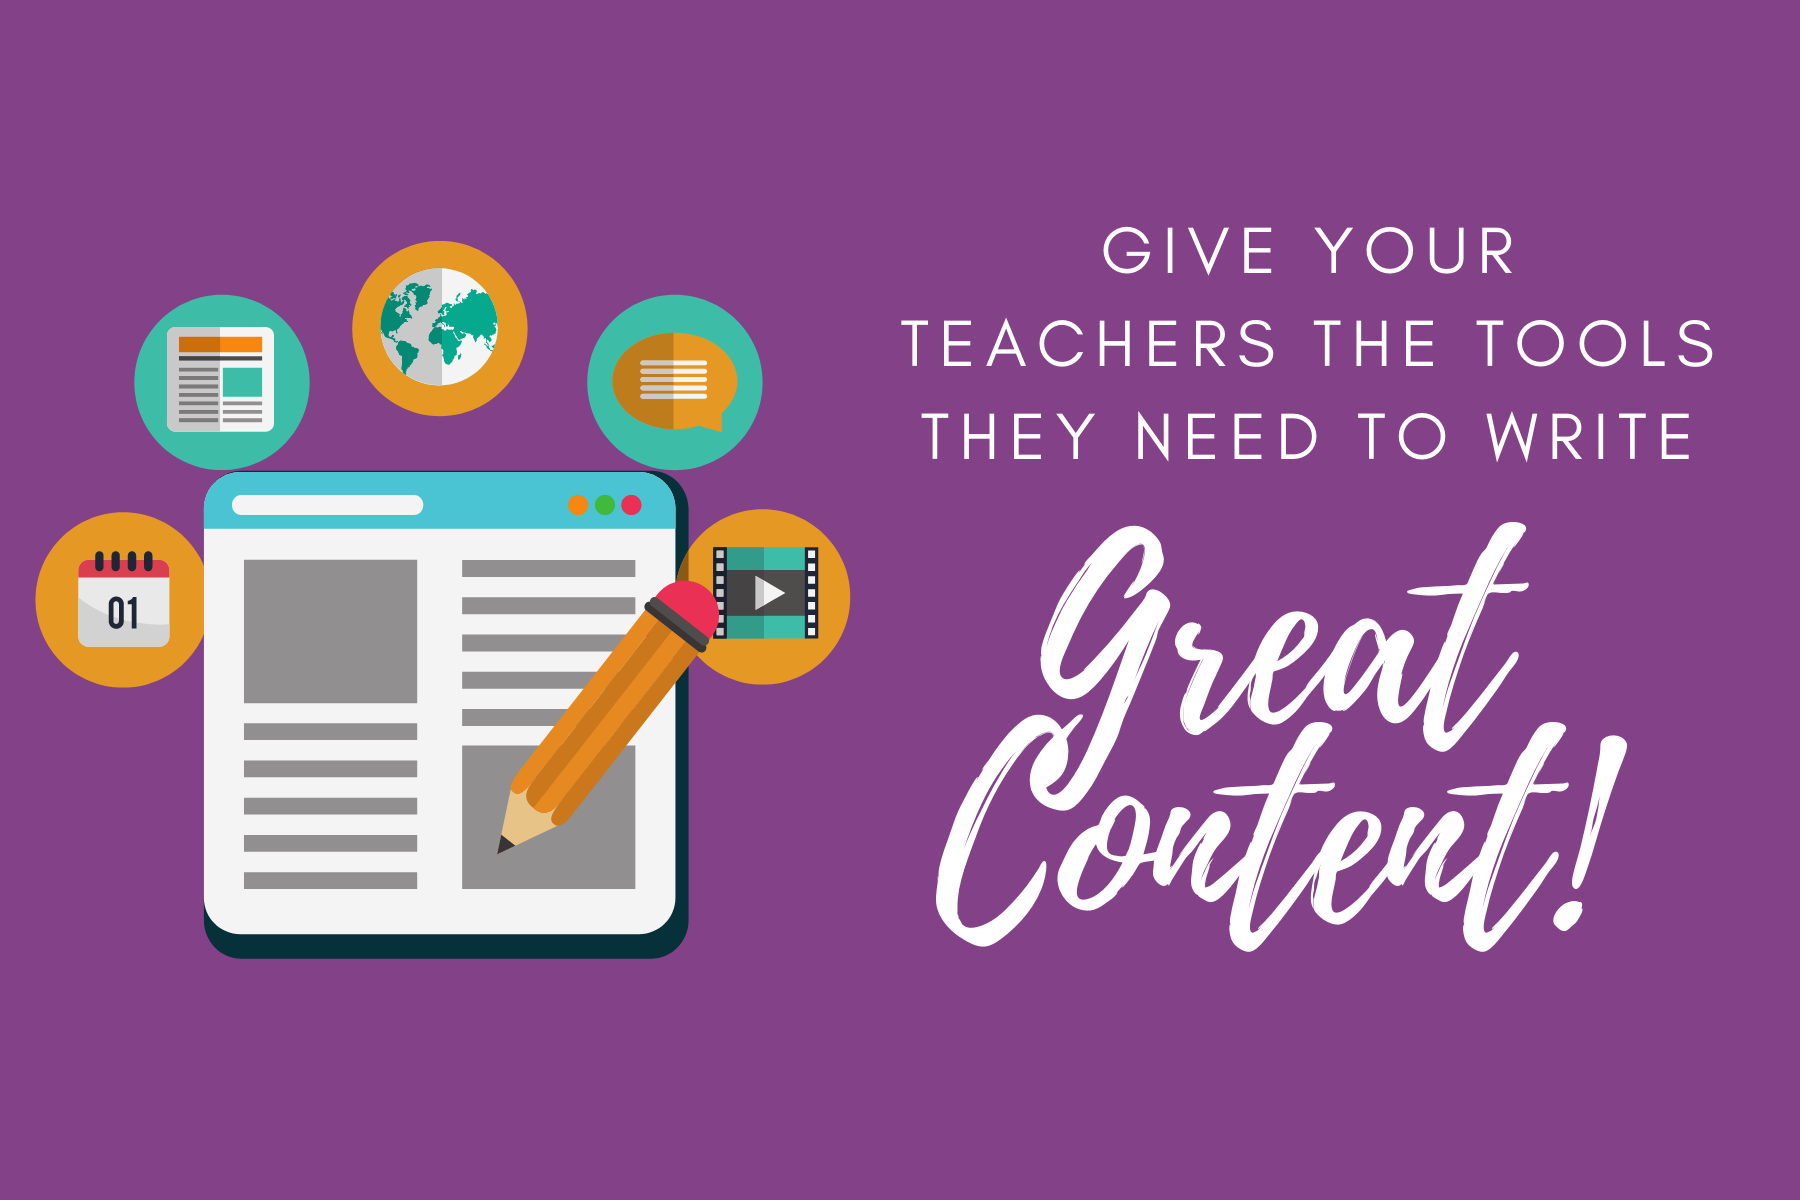 Give teachers the tools they need to write great content